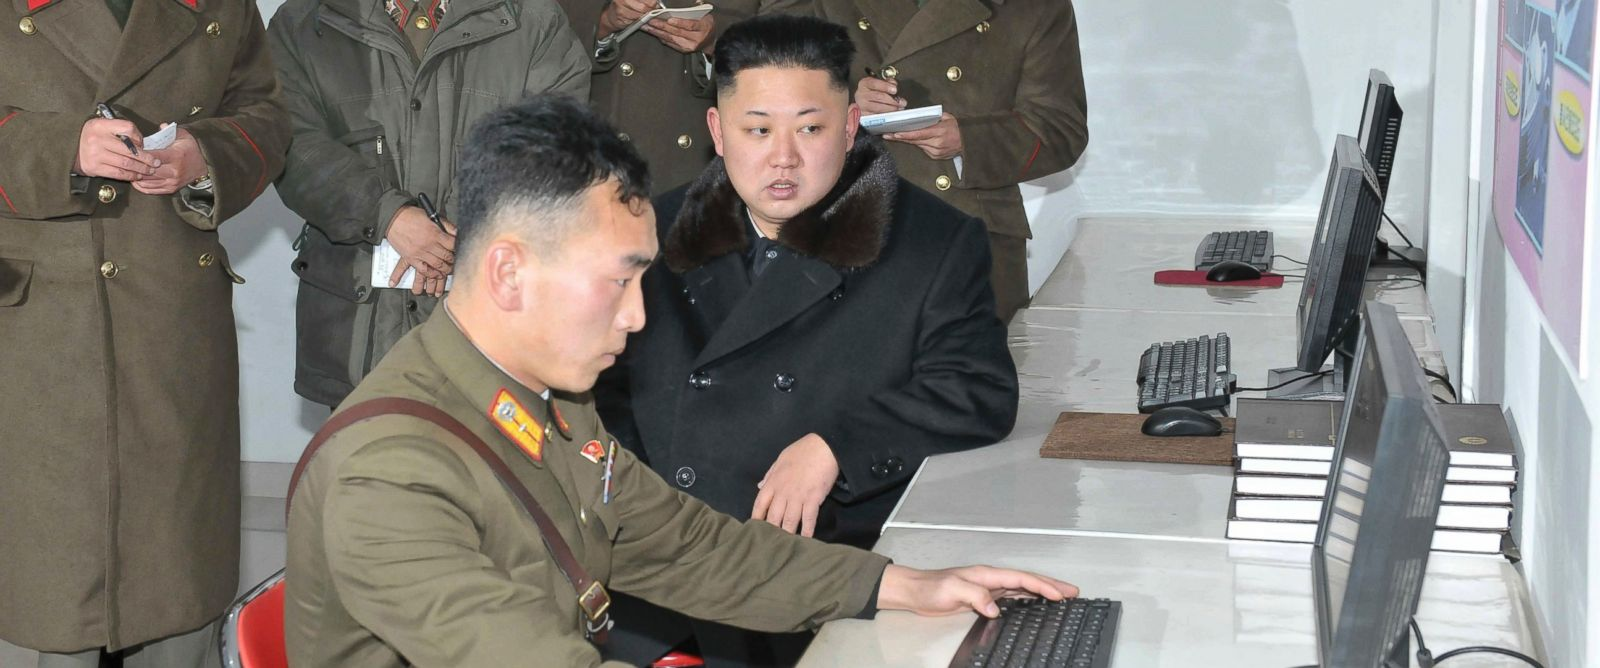 PHOTO: Kim Jong-un visits the Designing Institute of the Korean Peoples Army in Pyongyang on Dec. 14, 2013.